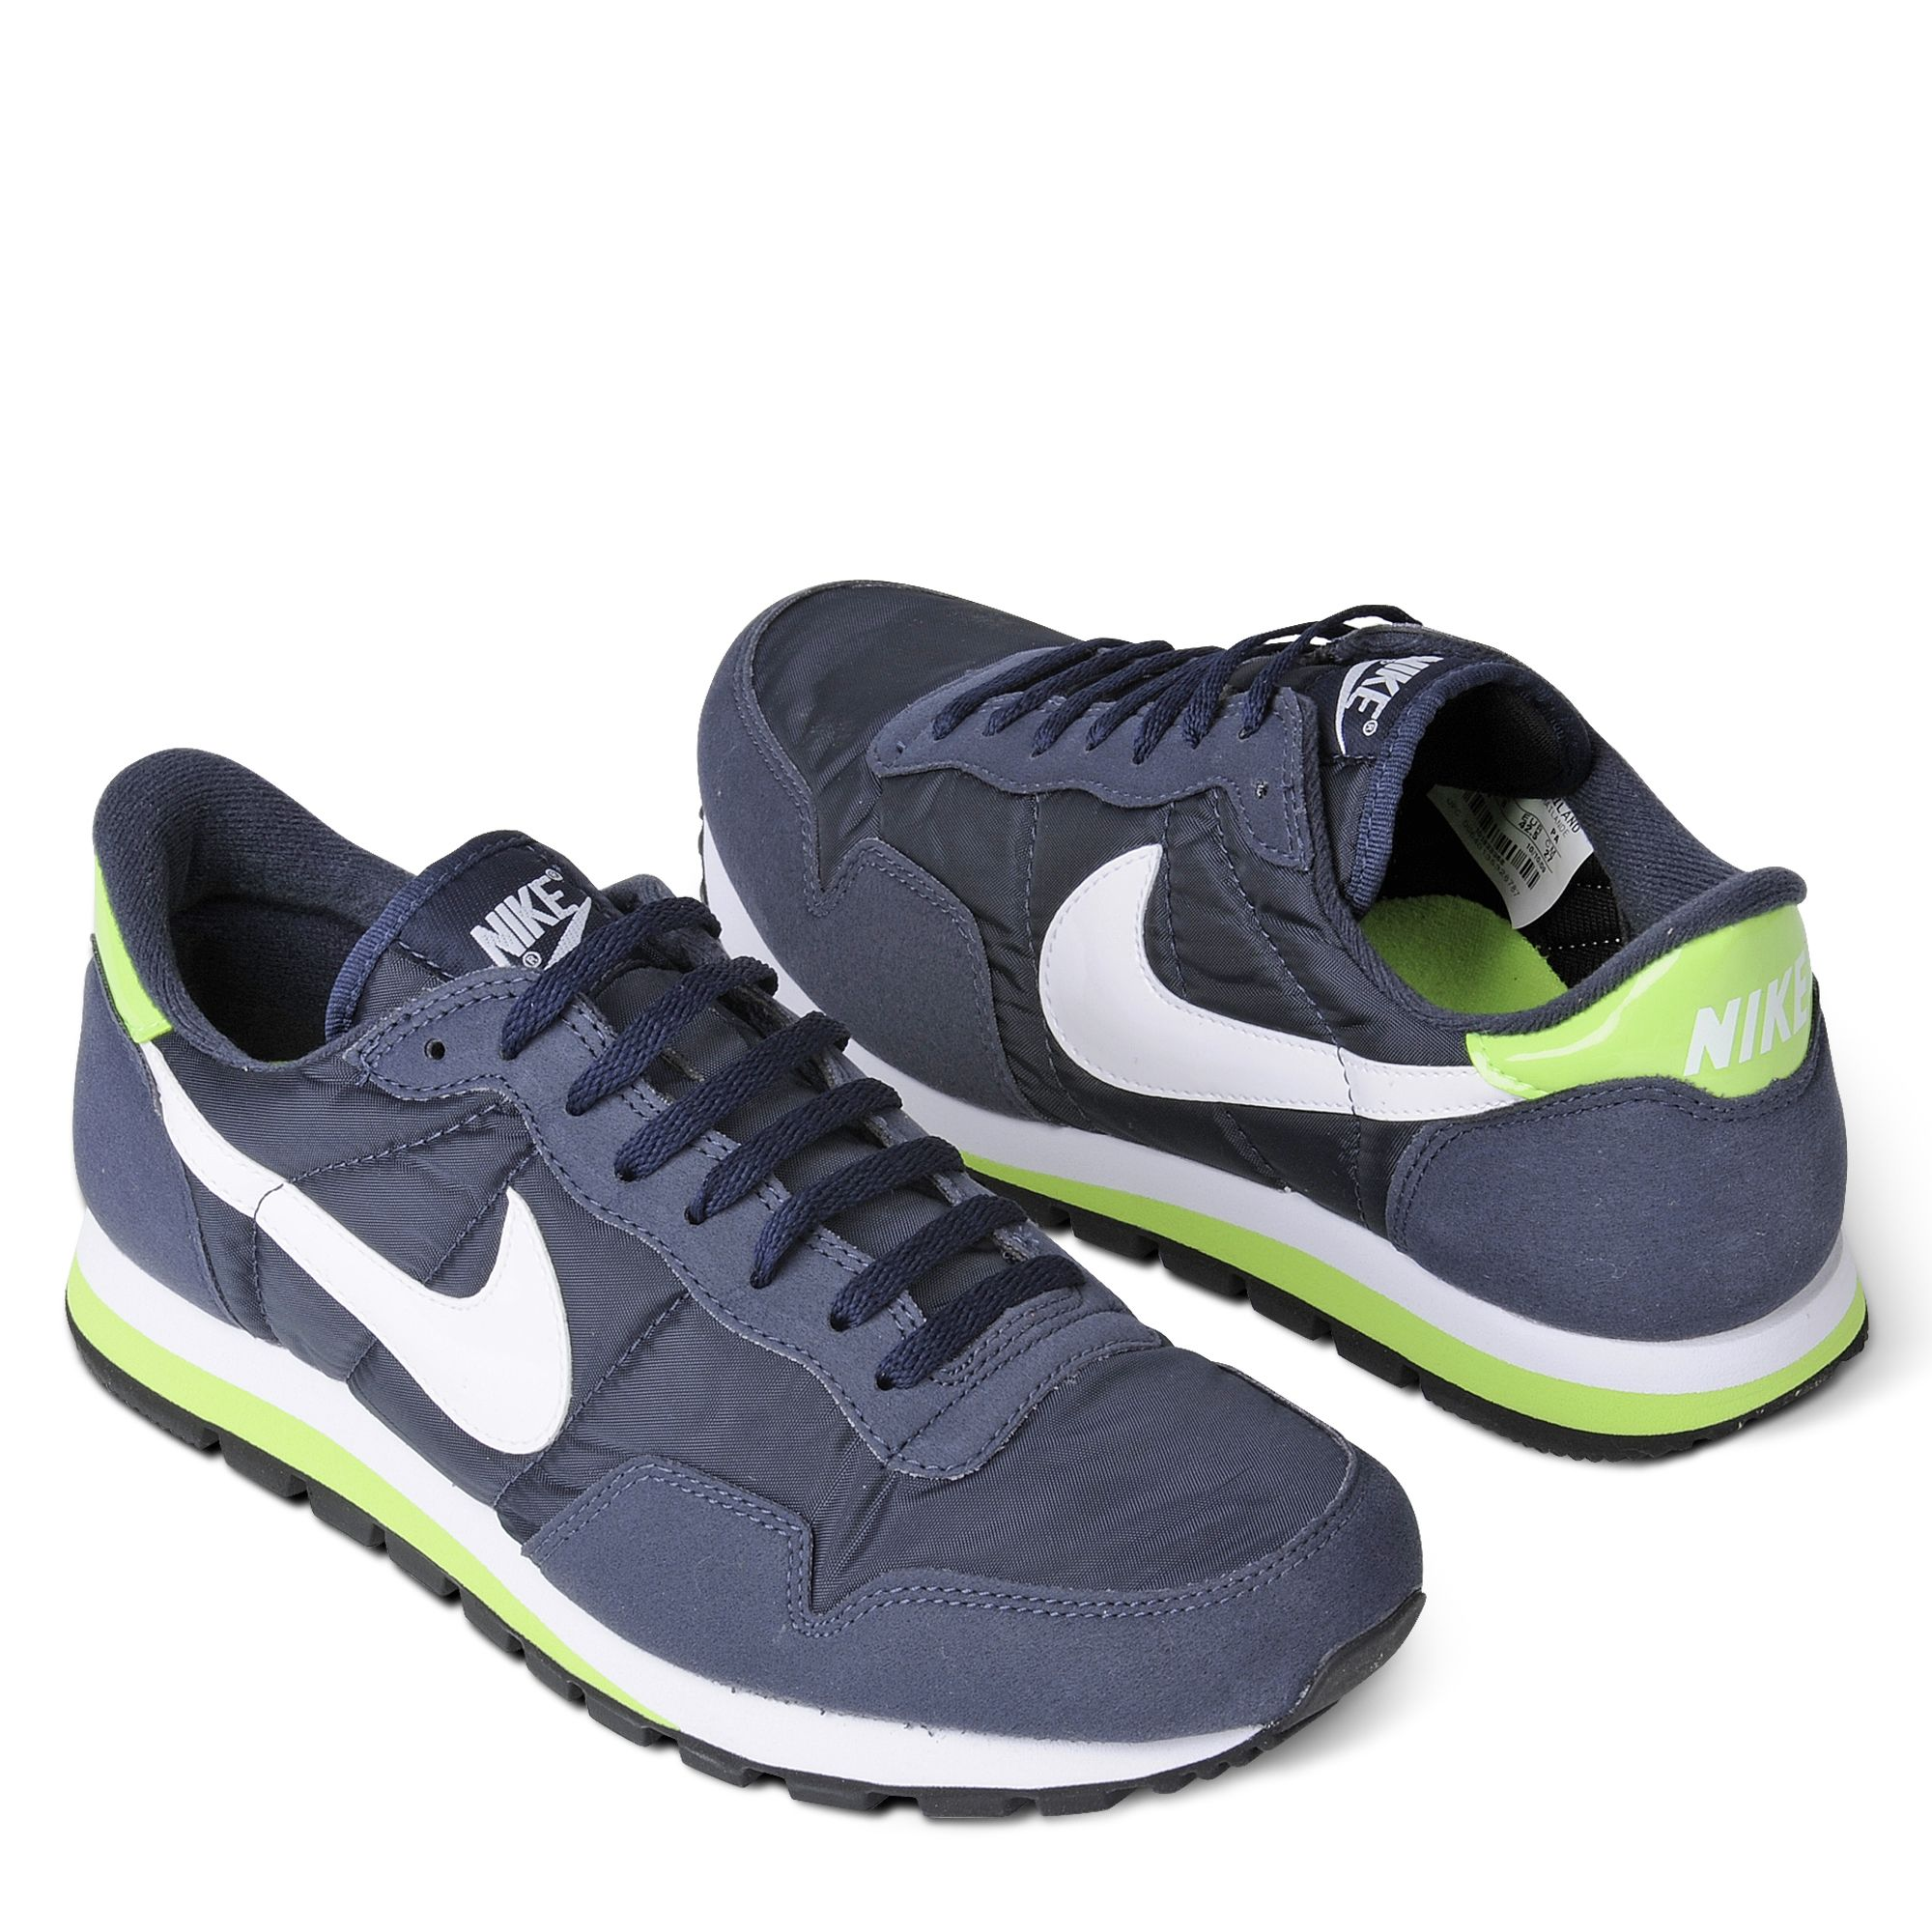 new product 3f34d a93a8 Nike Metro Plus Retro Running Shoes in Blue for Men - Lyst